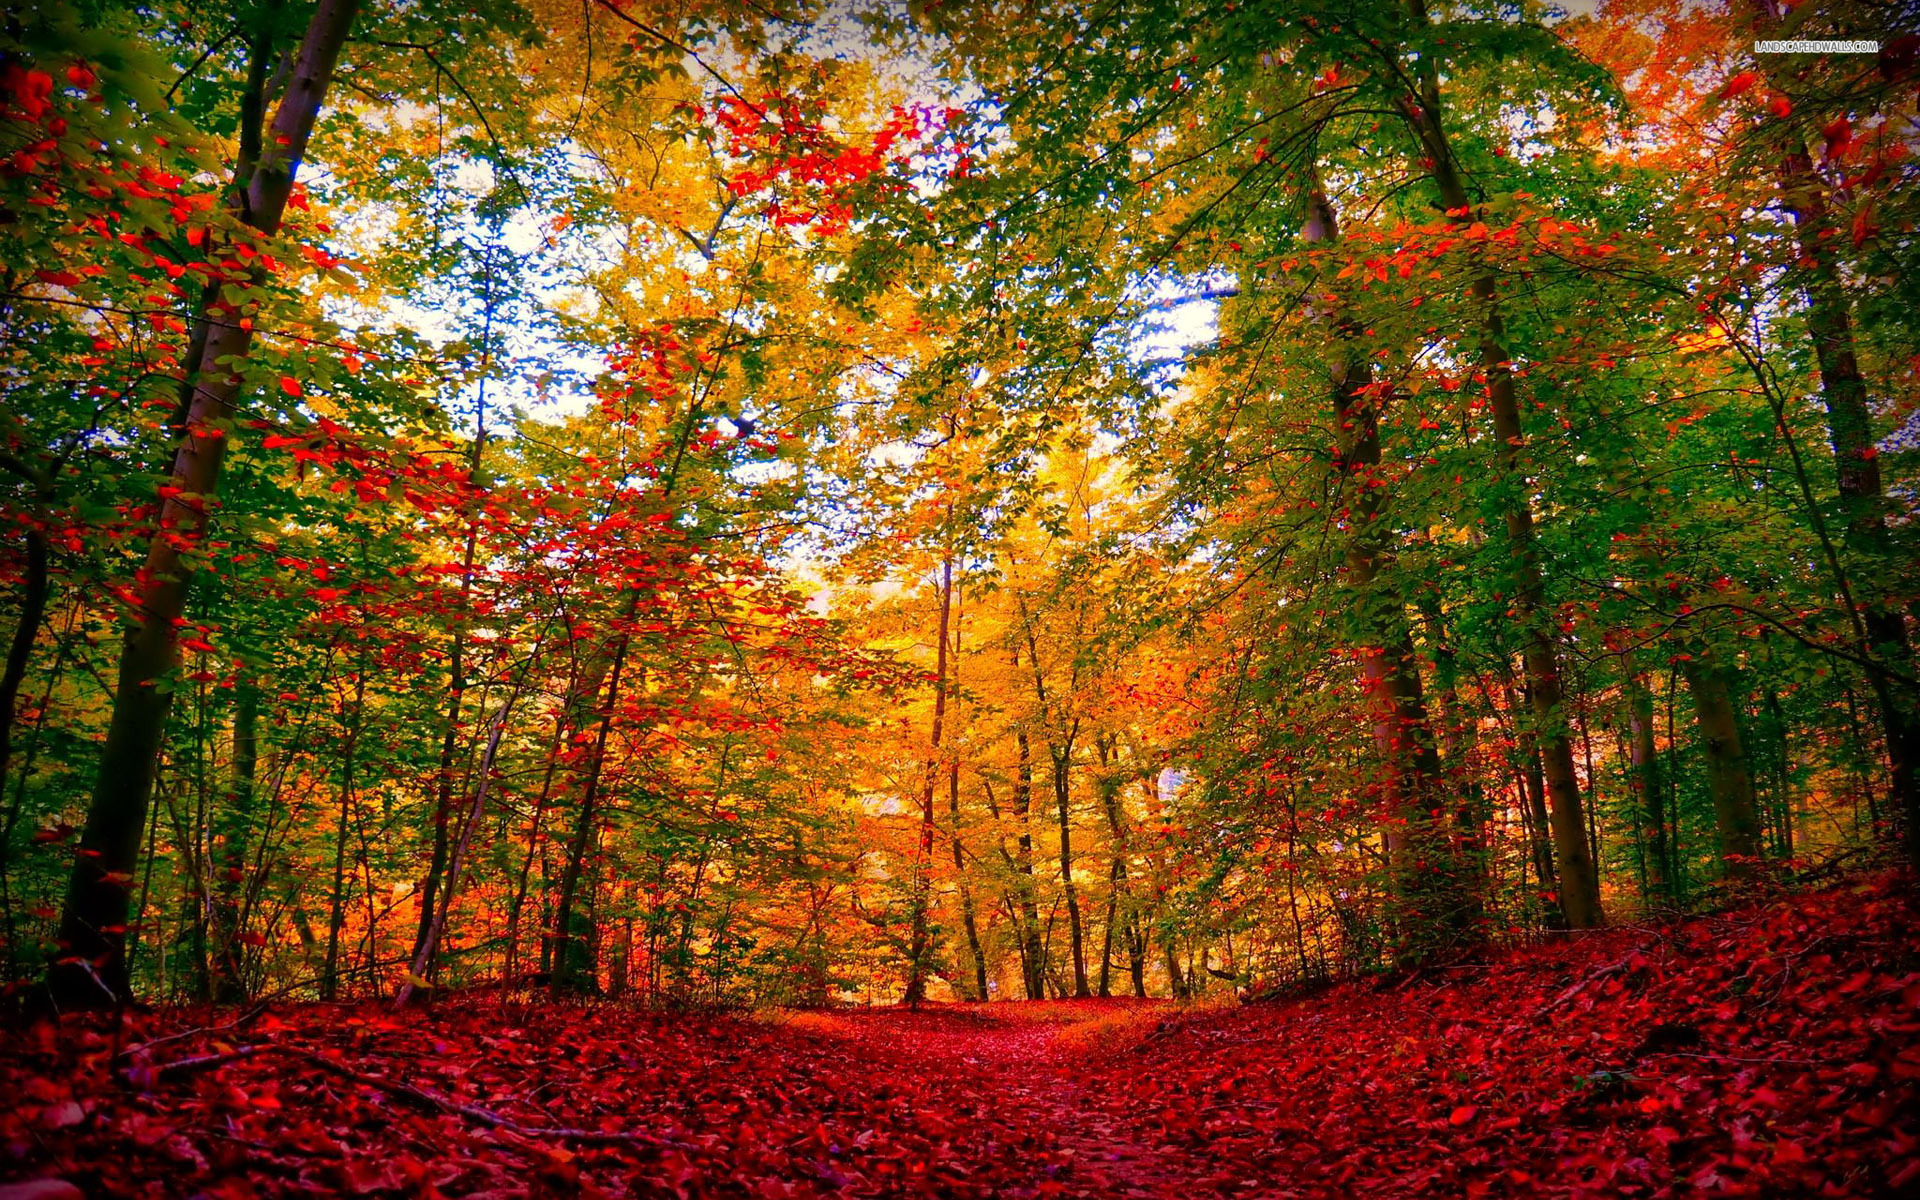 Autumn Leaves Falling Hd Wallpaper Extra Ordinary Autumn Forest Wallpapers Extra Ordinary